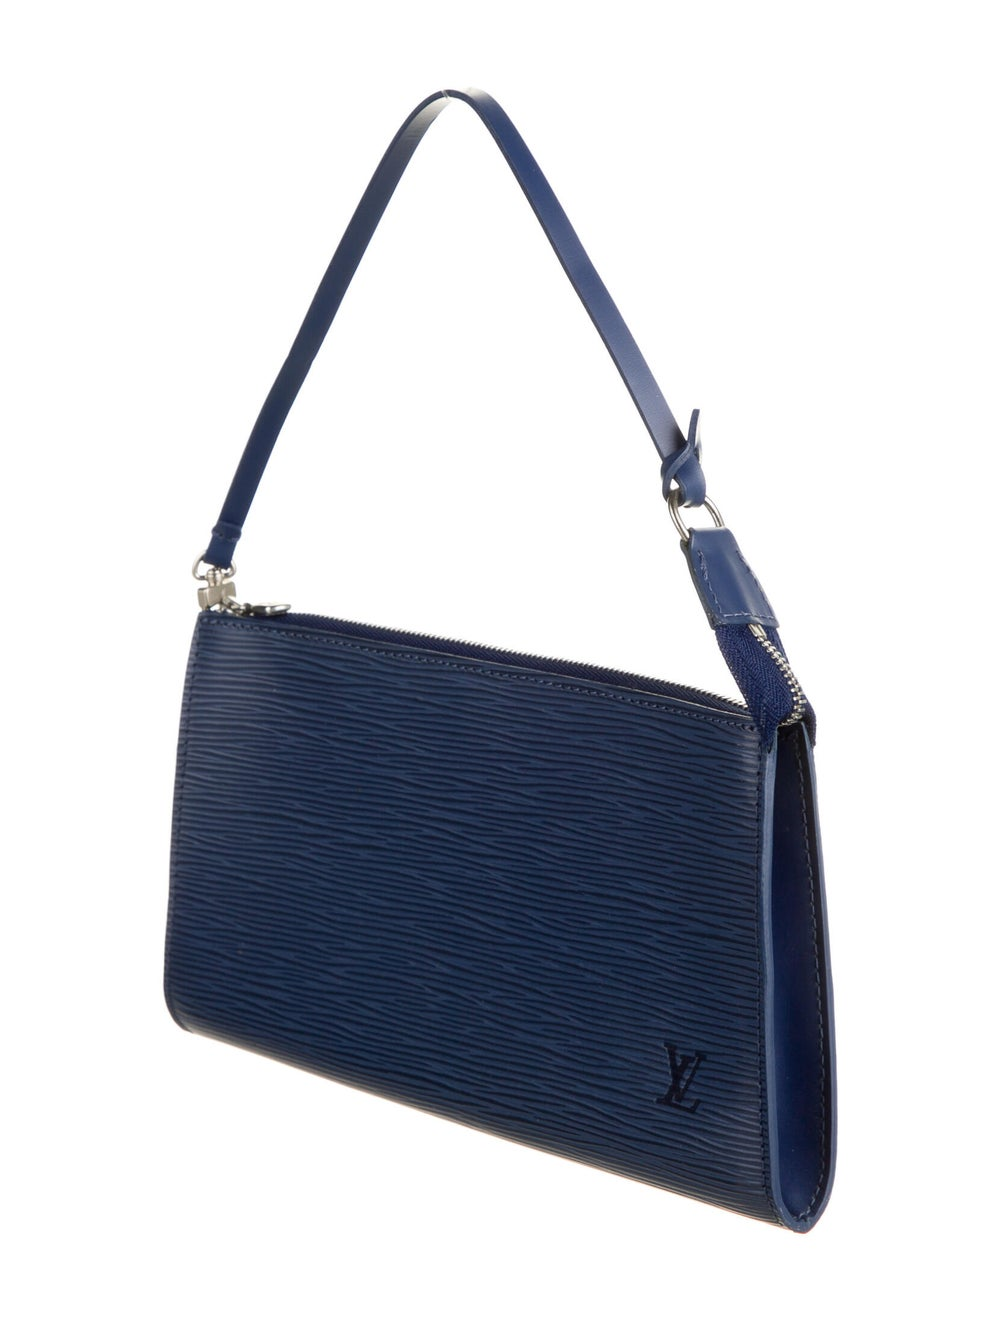 Louis Vuitton Epi Pochette Accessories 24 Indigo - image 3